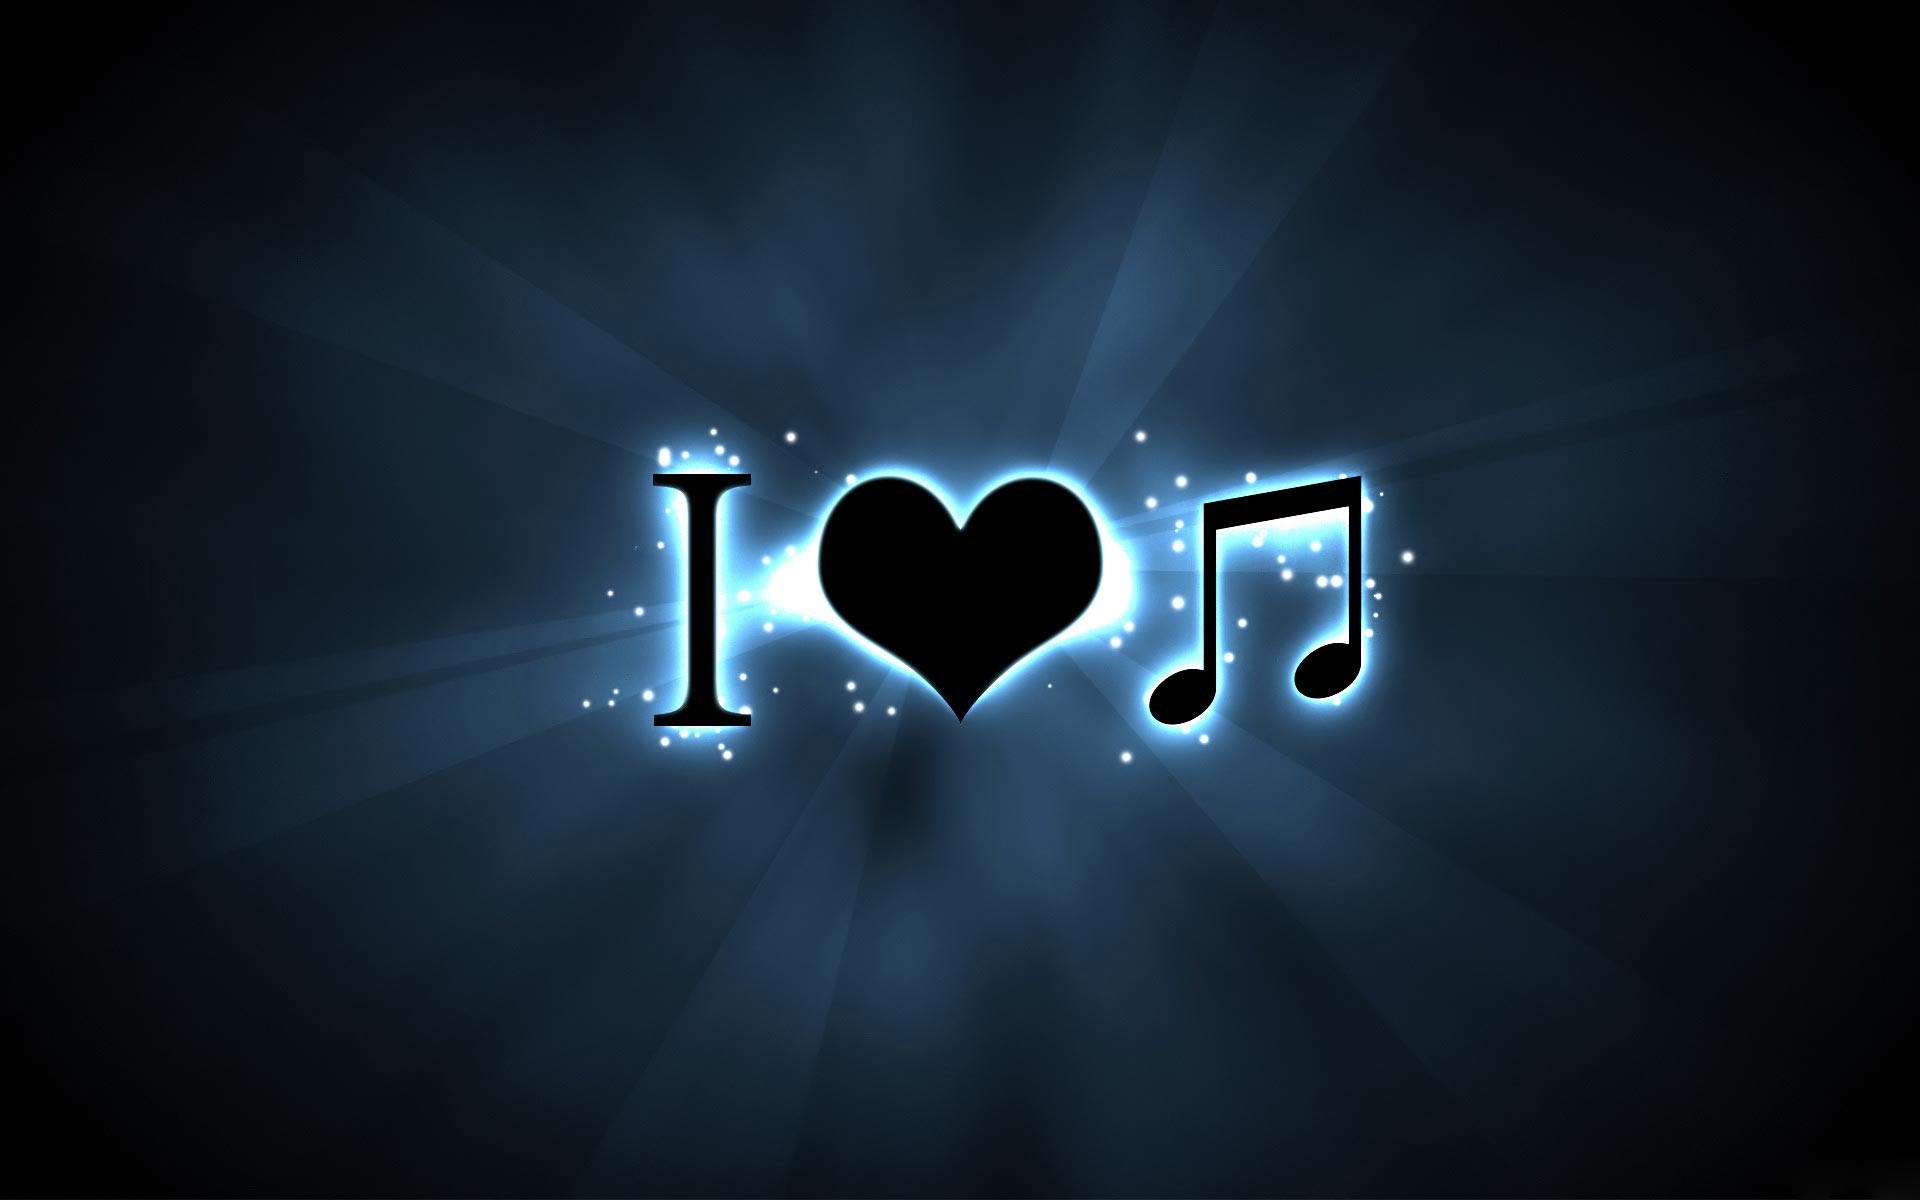 Cool Wallpapers Music Awesome Cool Hd Photography Images Download 1920x1200